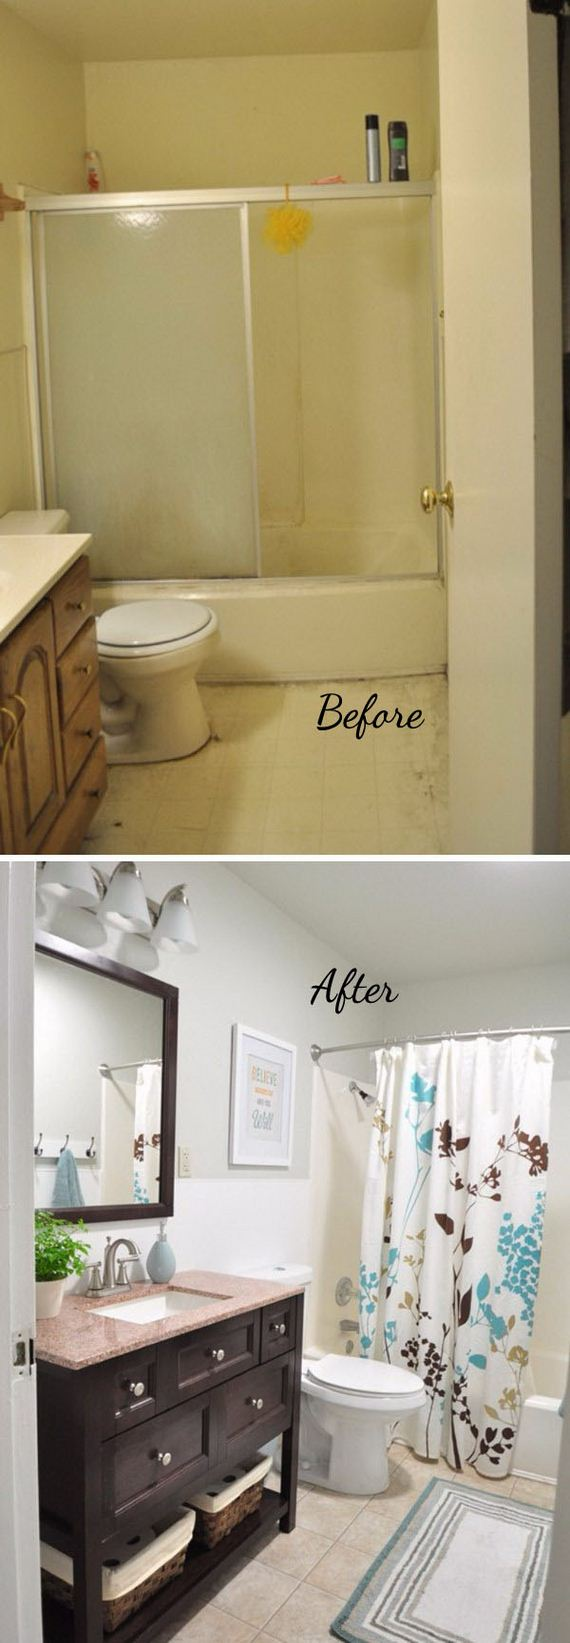 09-awesome-bathroom-makeovers